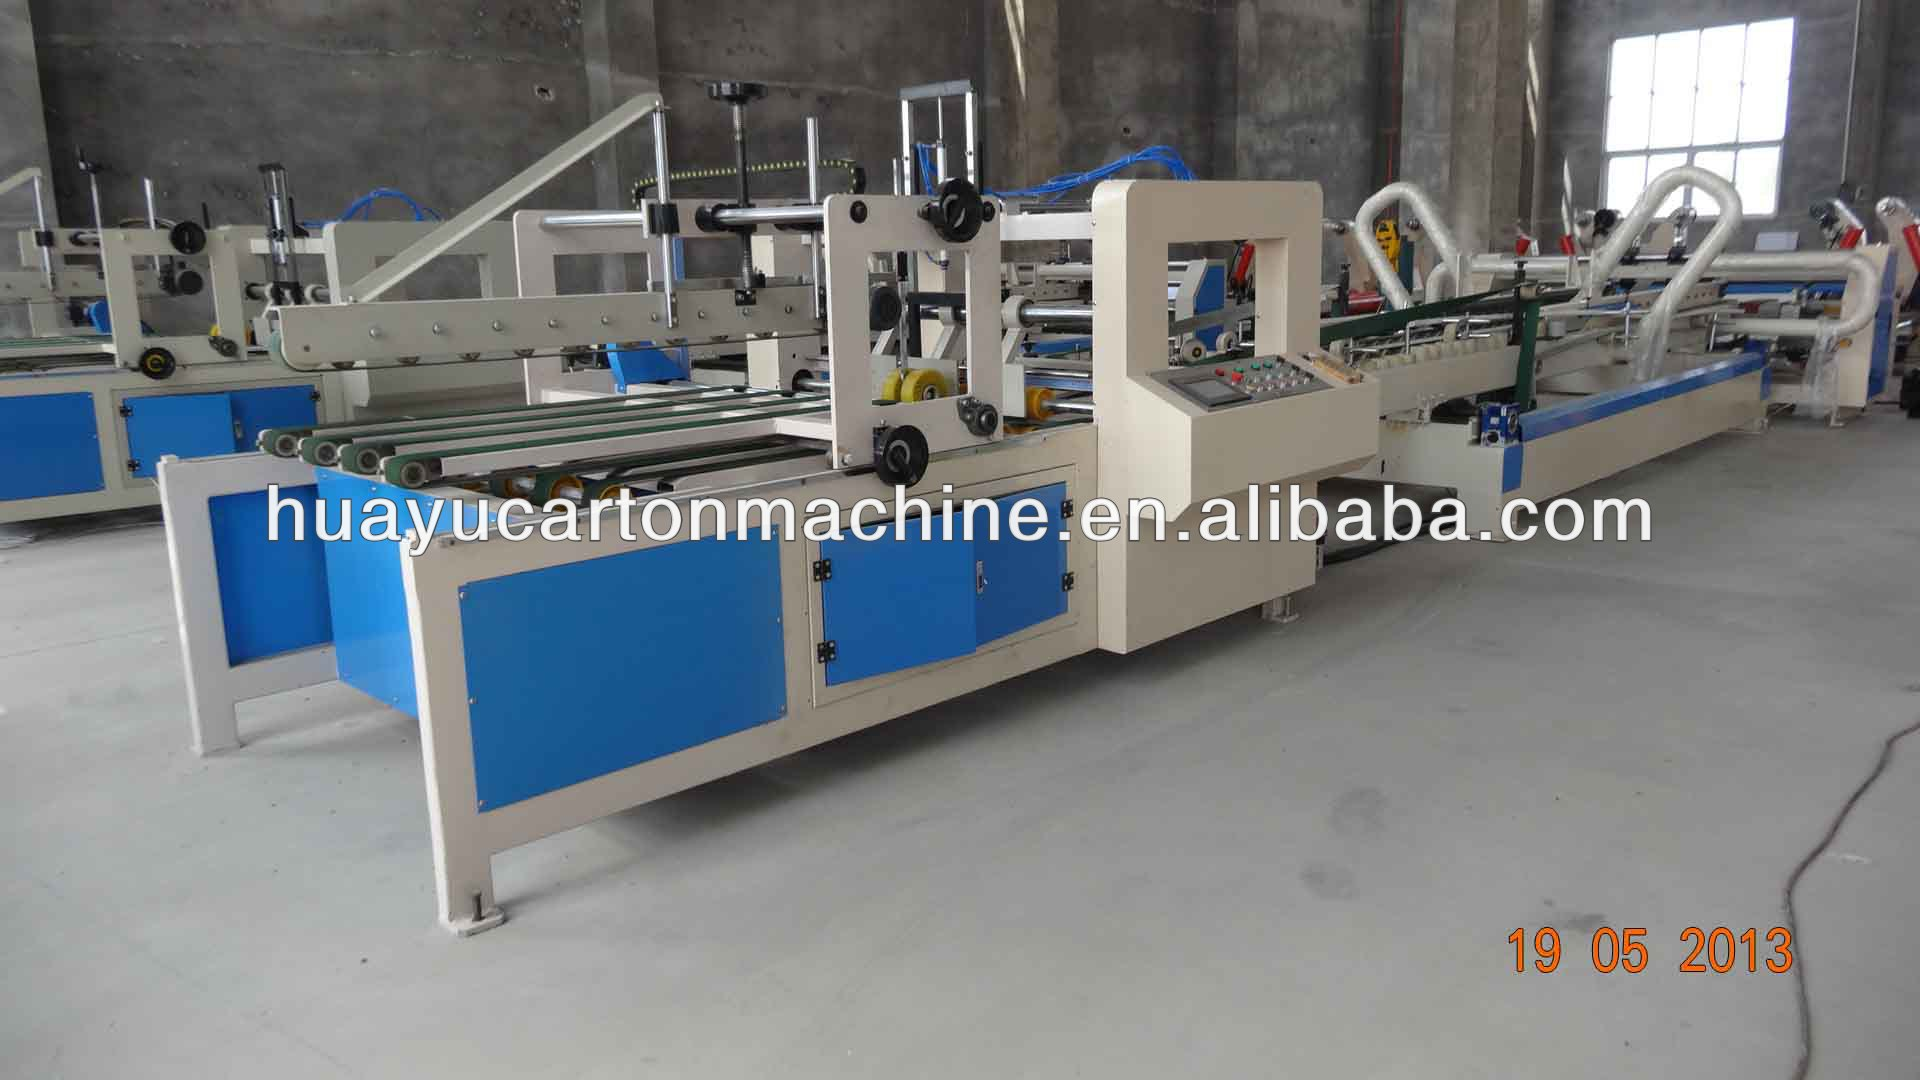 QRE Kinds of automatic carton folding gluing machine for carton box